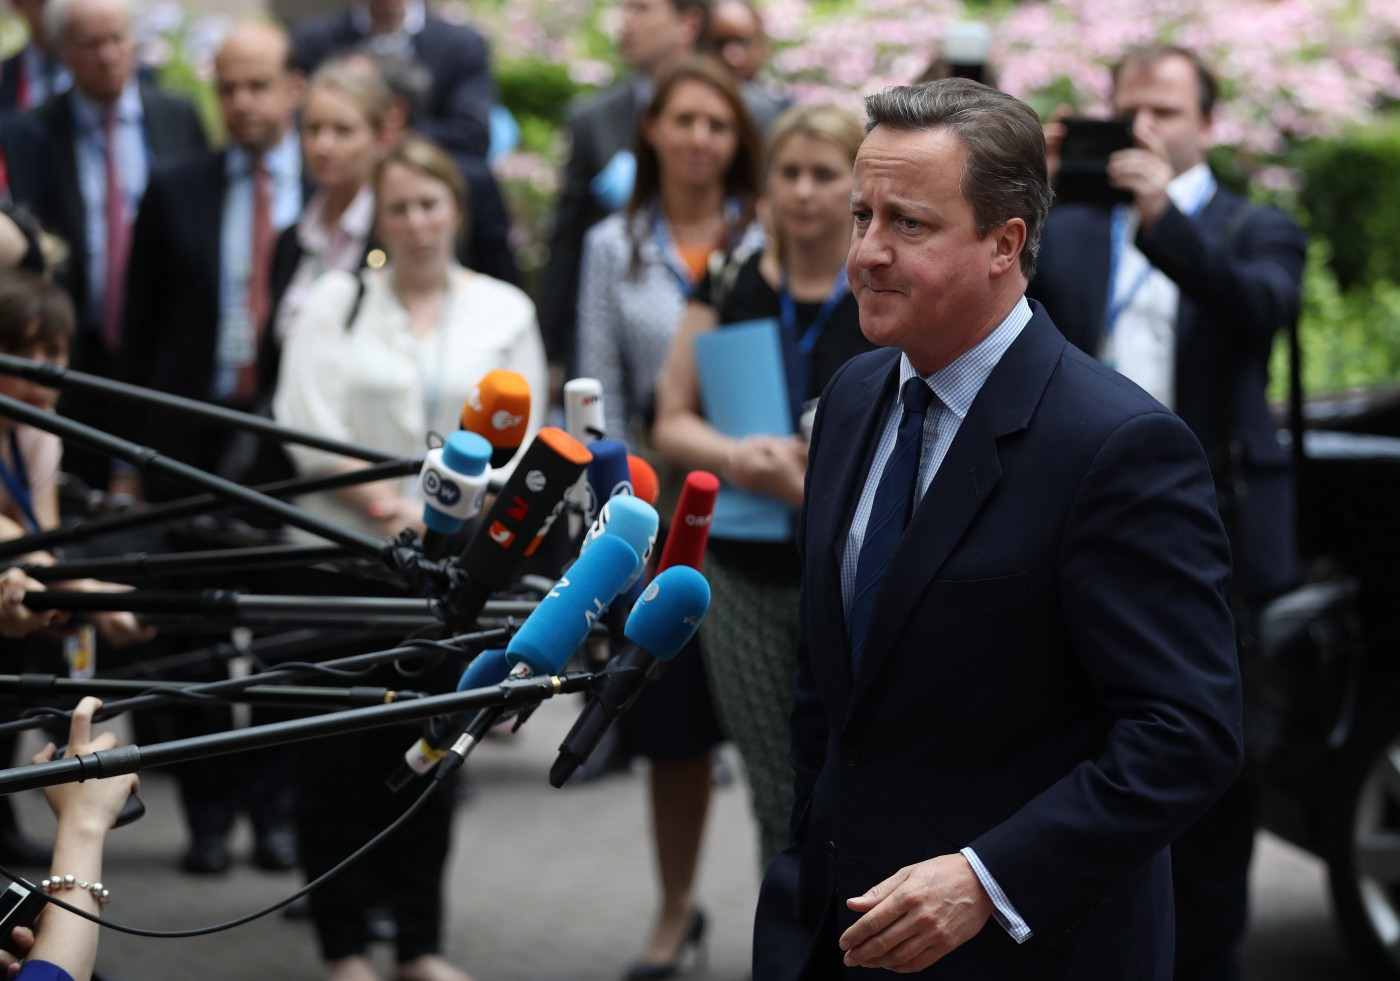 Former British Prime Minister David Cameron at a Council Meeting at the Council of the EU on June 28, 2016 in Brussels.